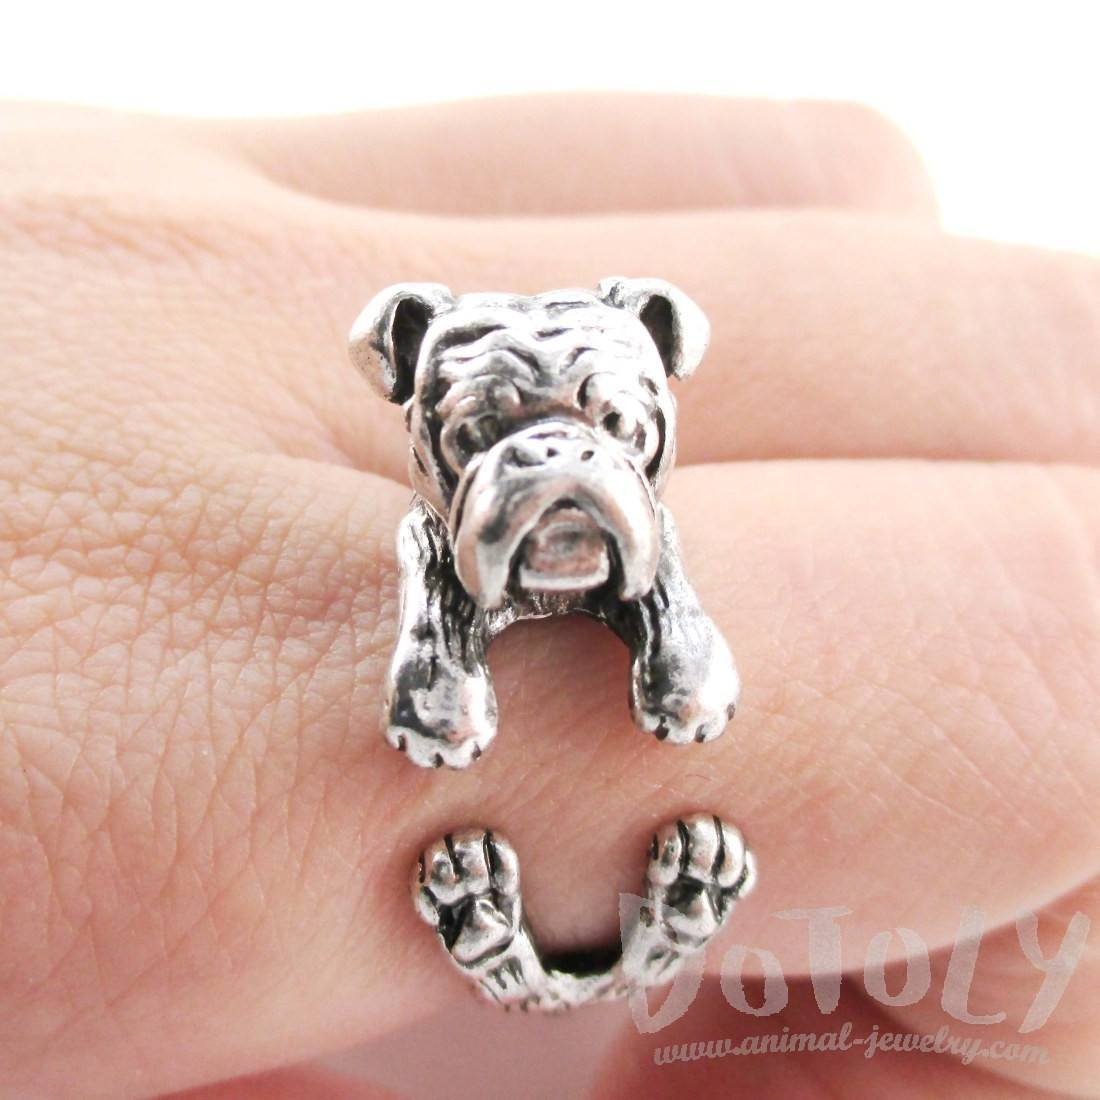 Realistic English Bulldog Shaped Animal Ring in Silver